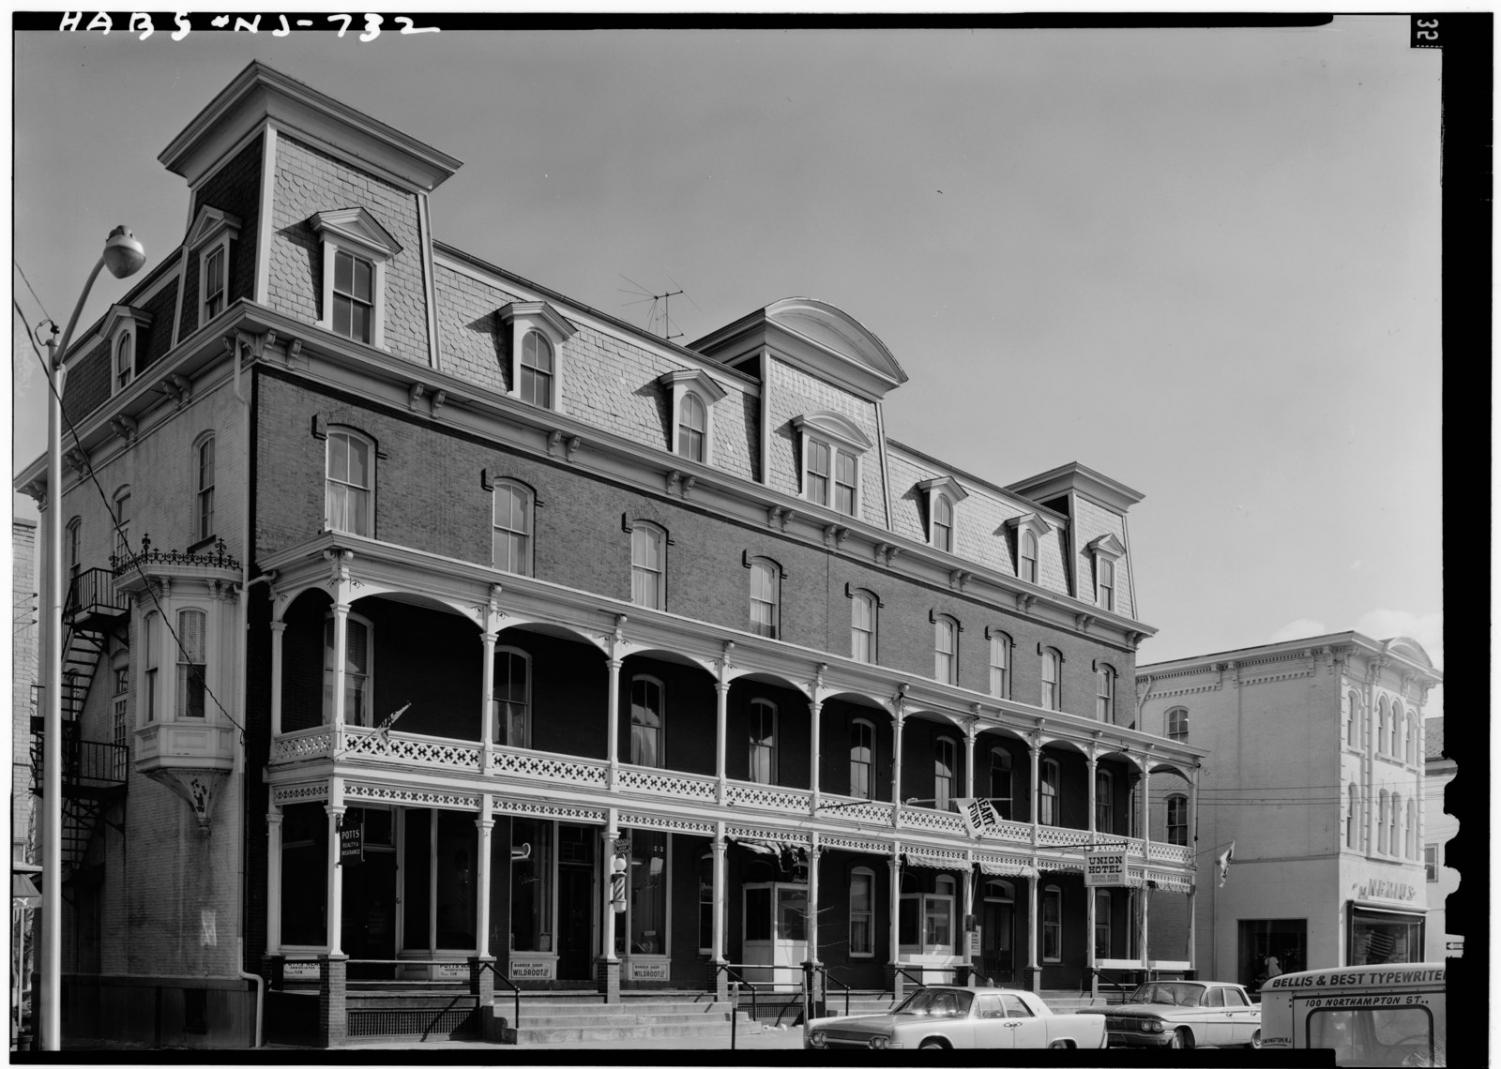 The Union Hotel in Flemington, NJ is potentially the site of paranormal activity